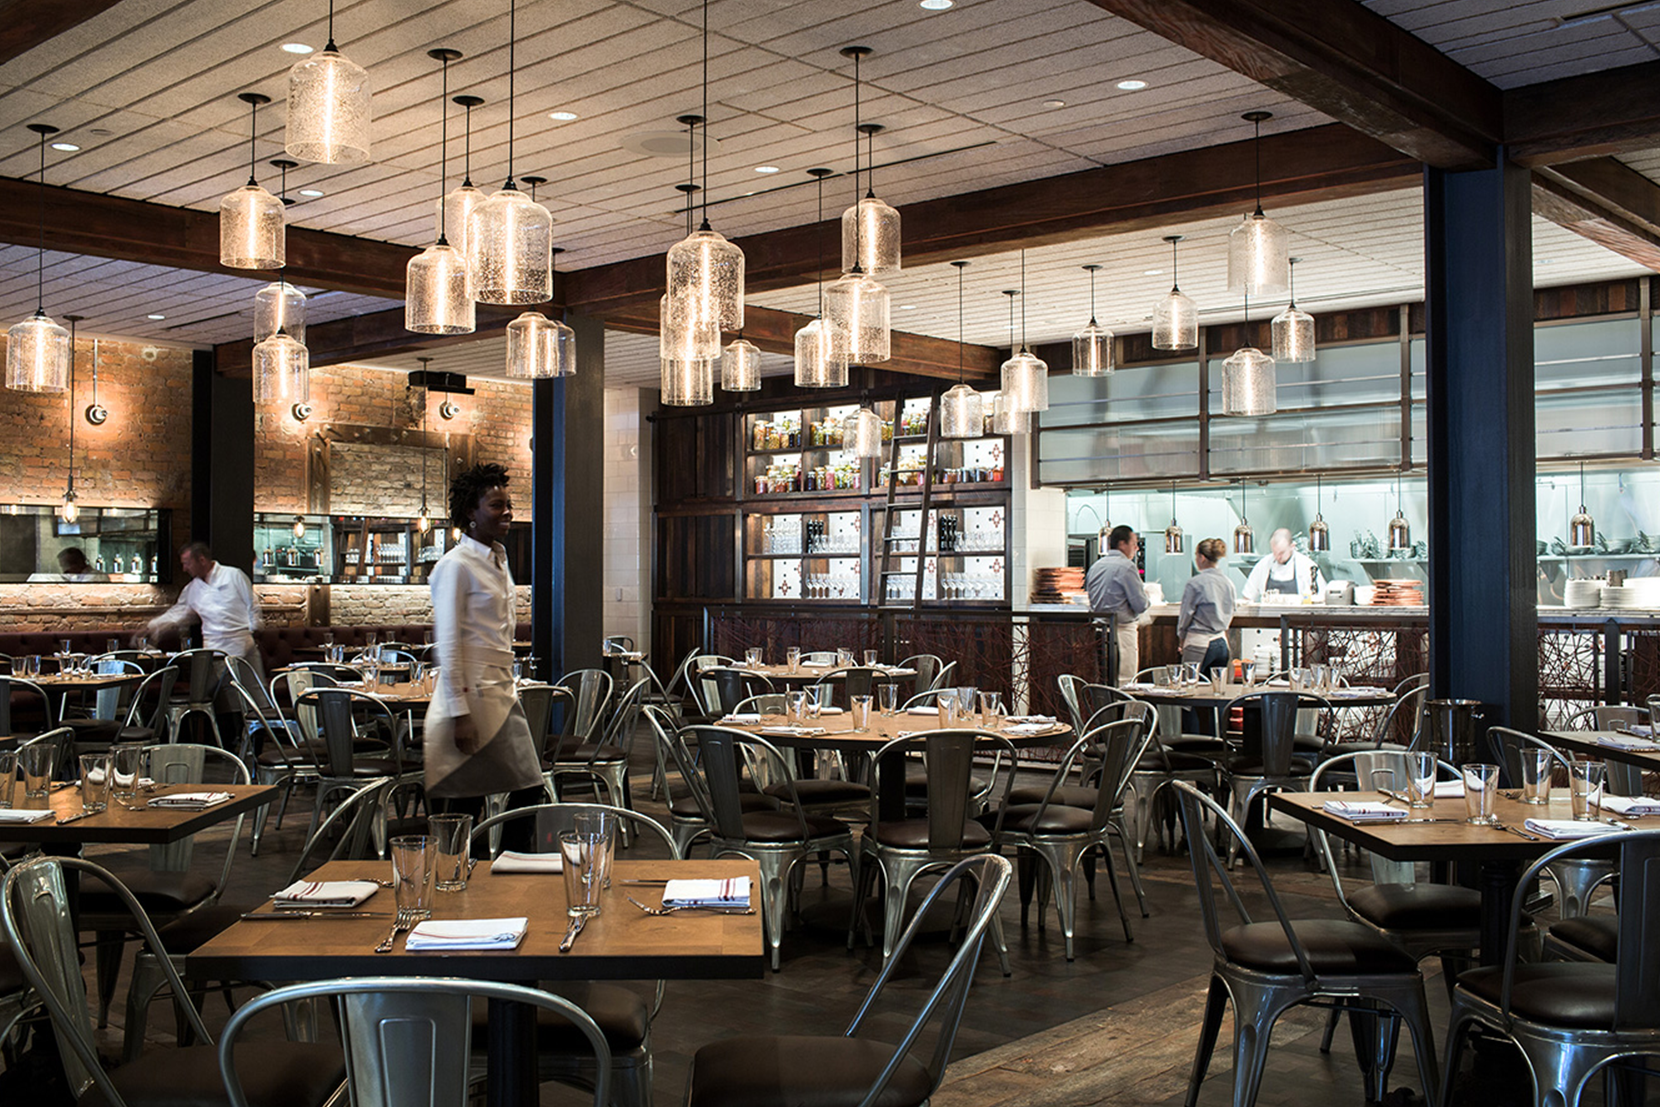 Lighting-Project-Pages-Restaurant-Modern-Pendant-Lighting-Centerpiece.png